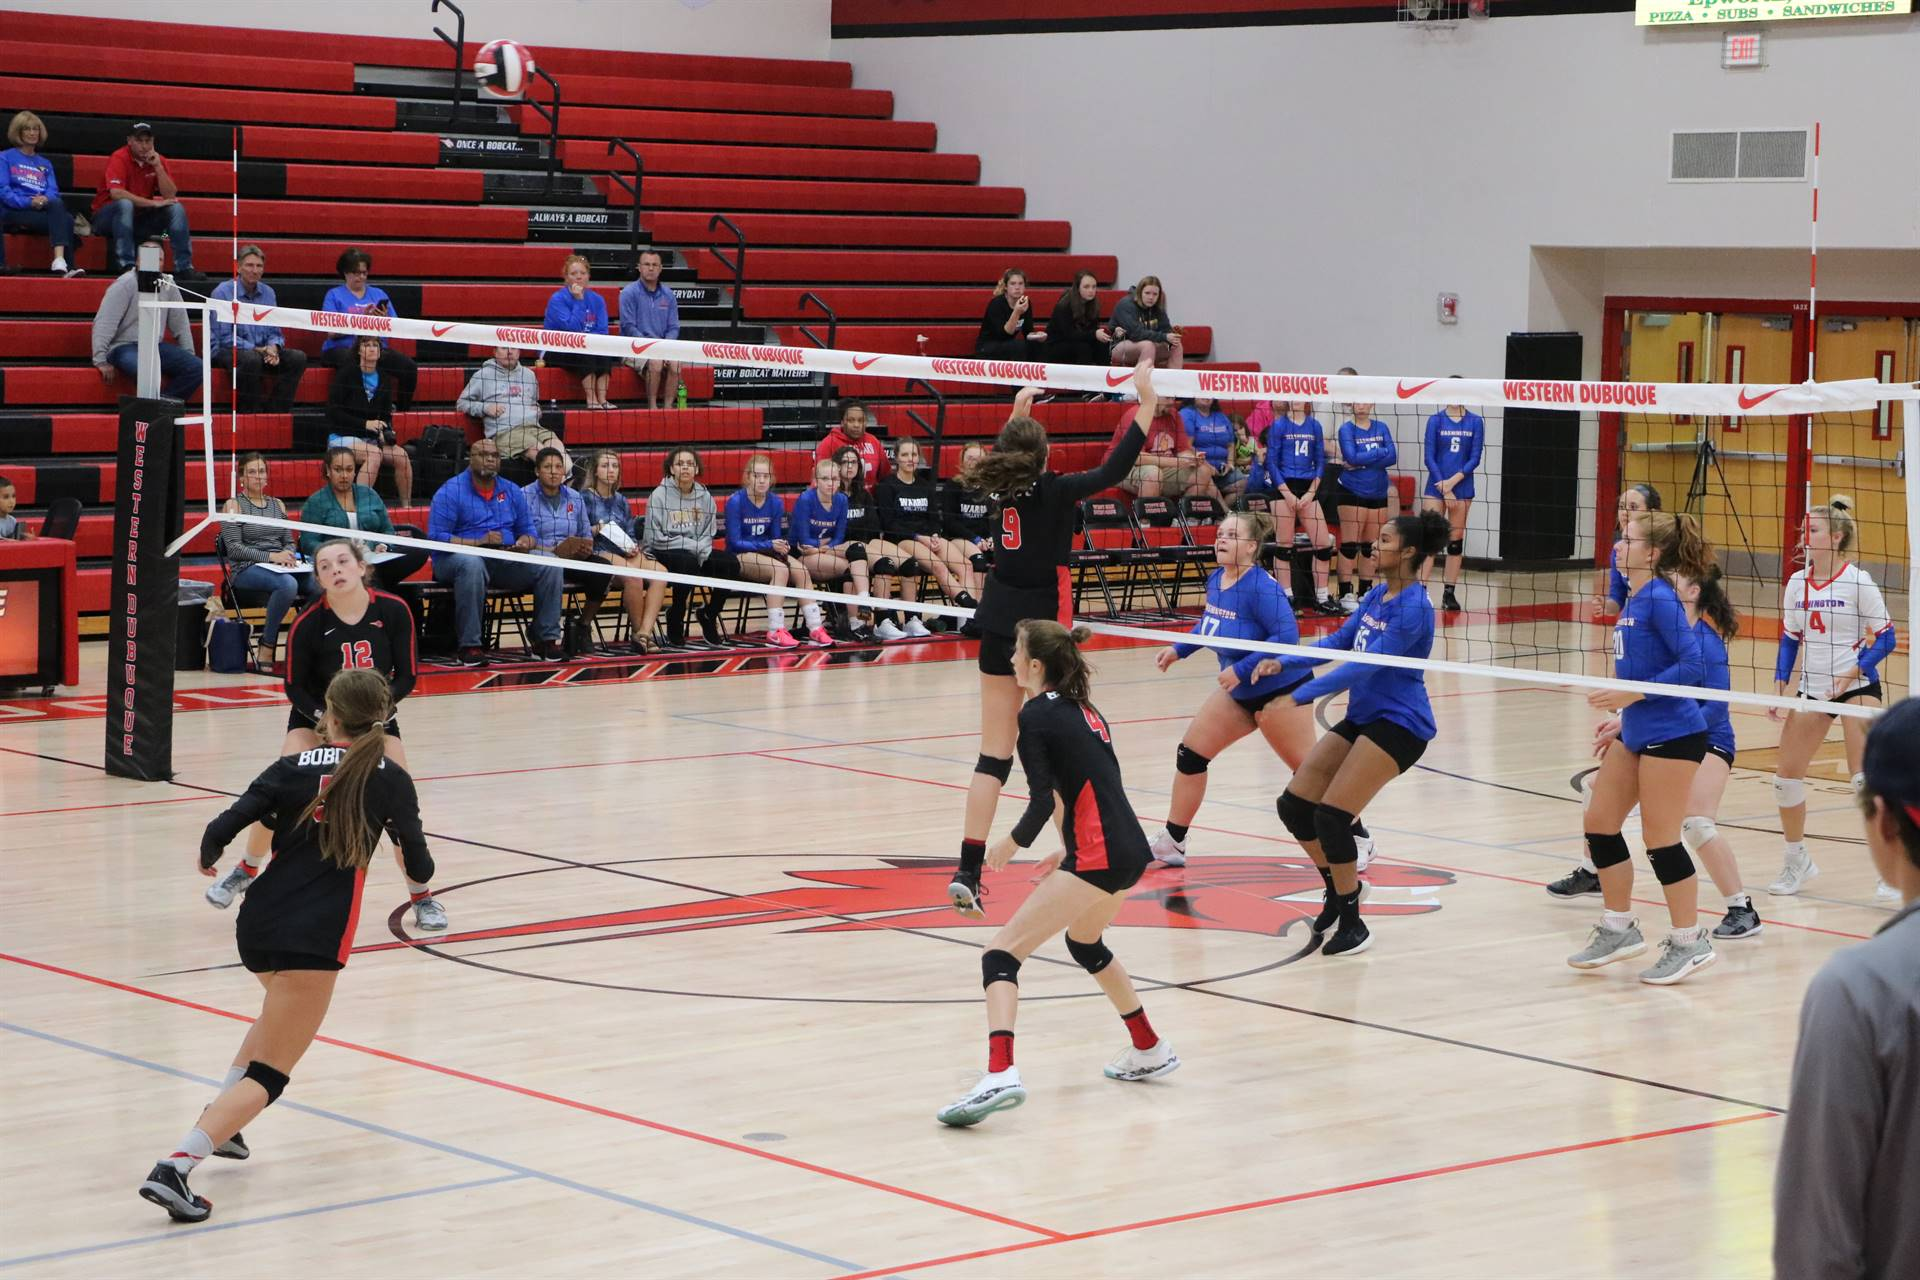 WDHS volleyball players compete